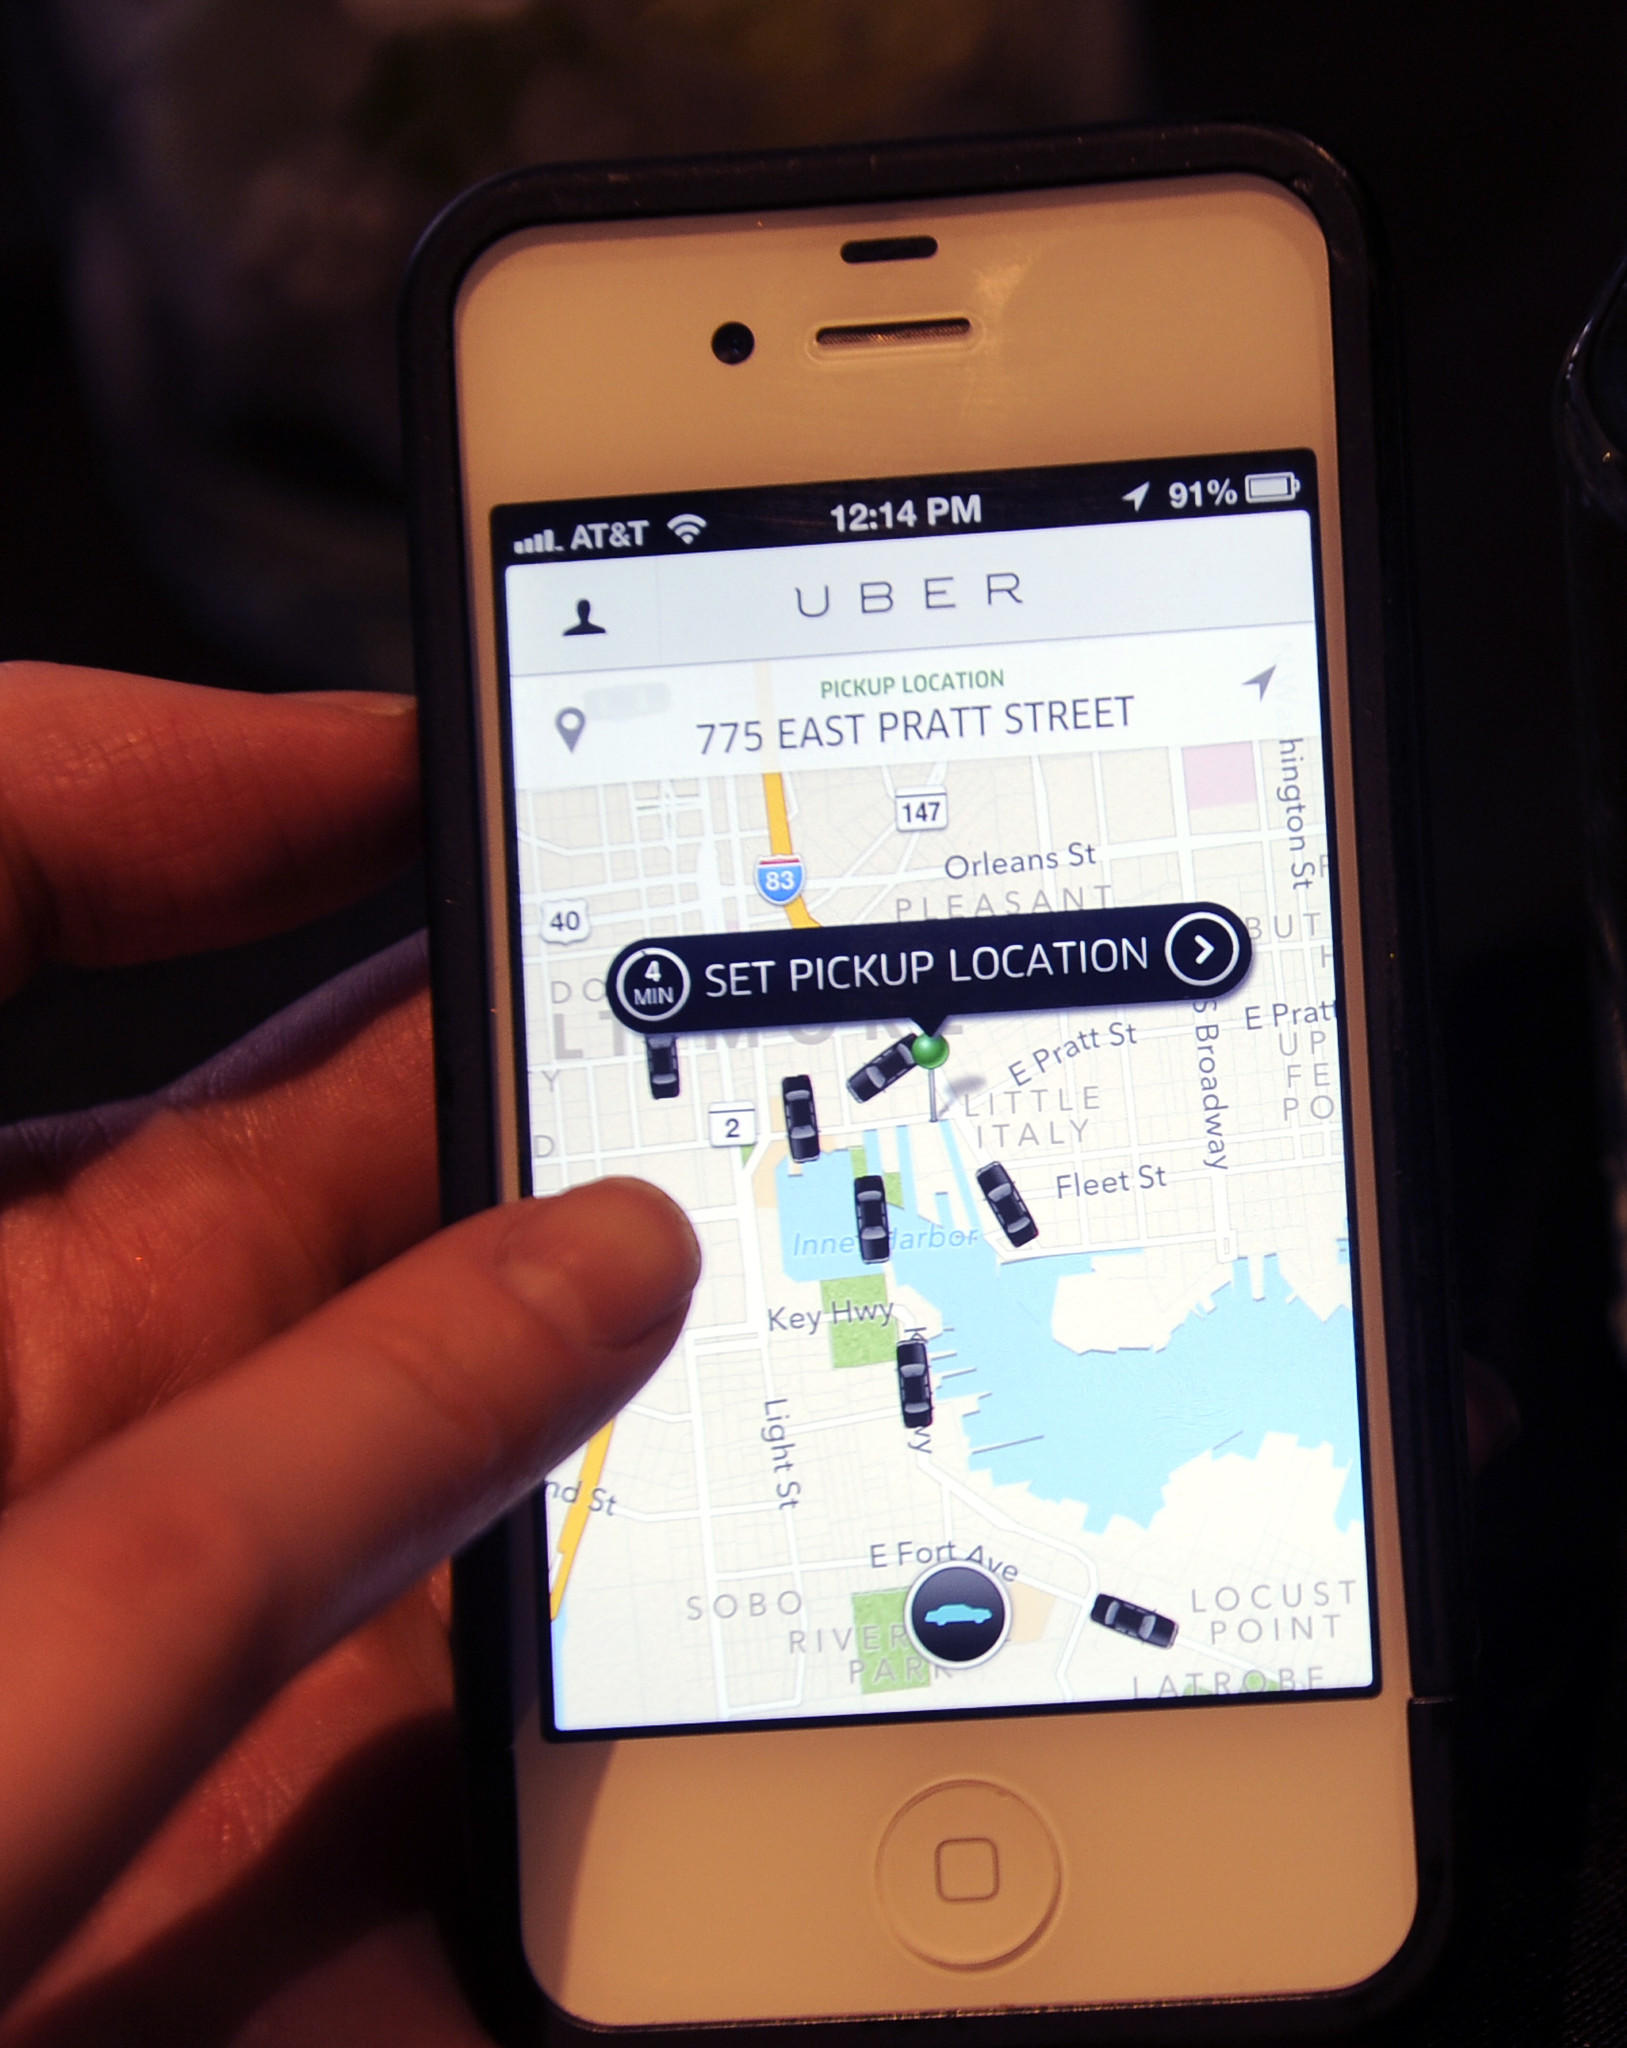 Uber allows users to request a car and pay for it via a mobile app.